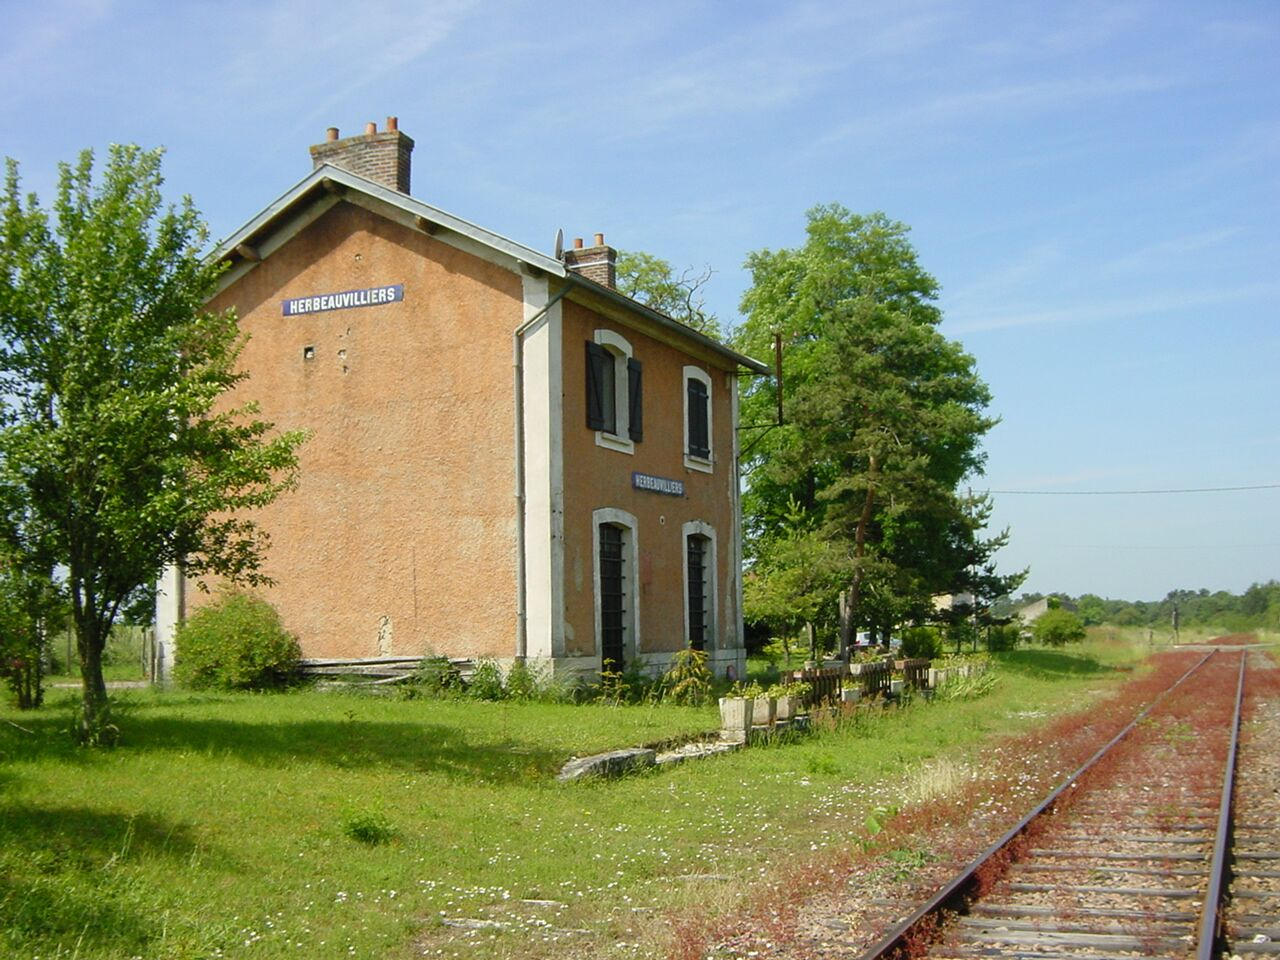 gare-dherbeauvilliers